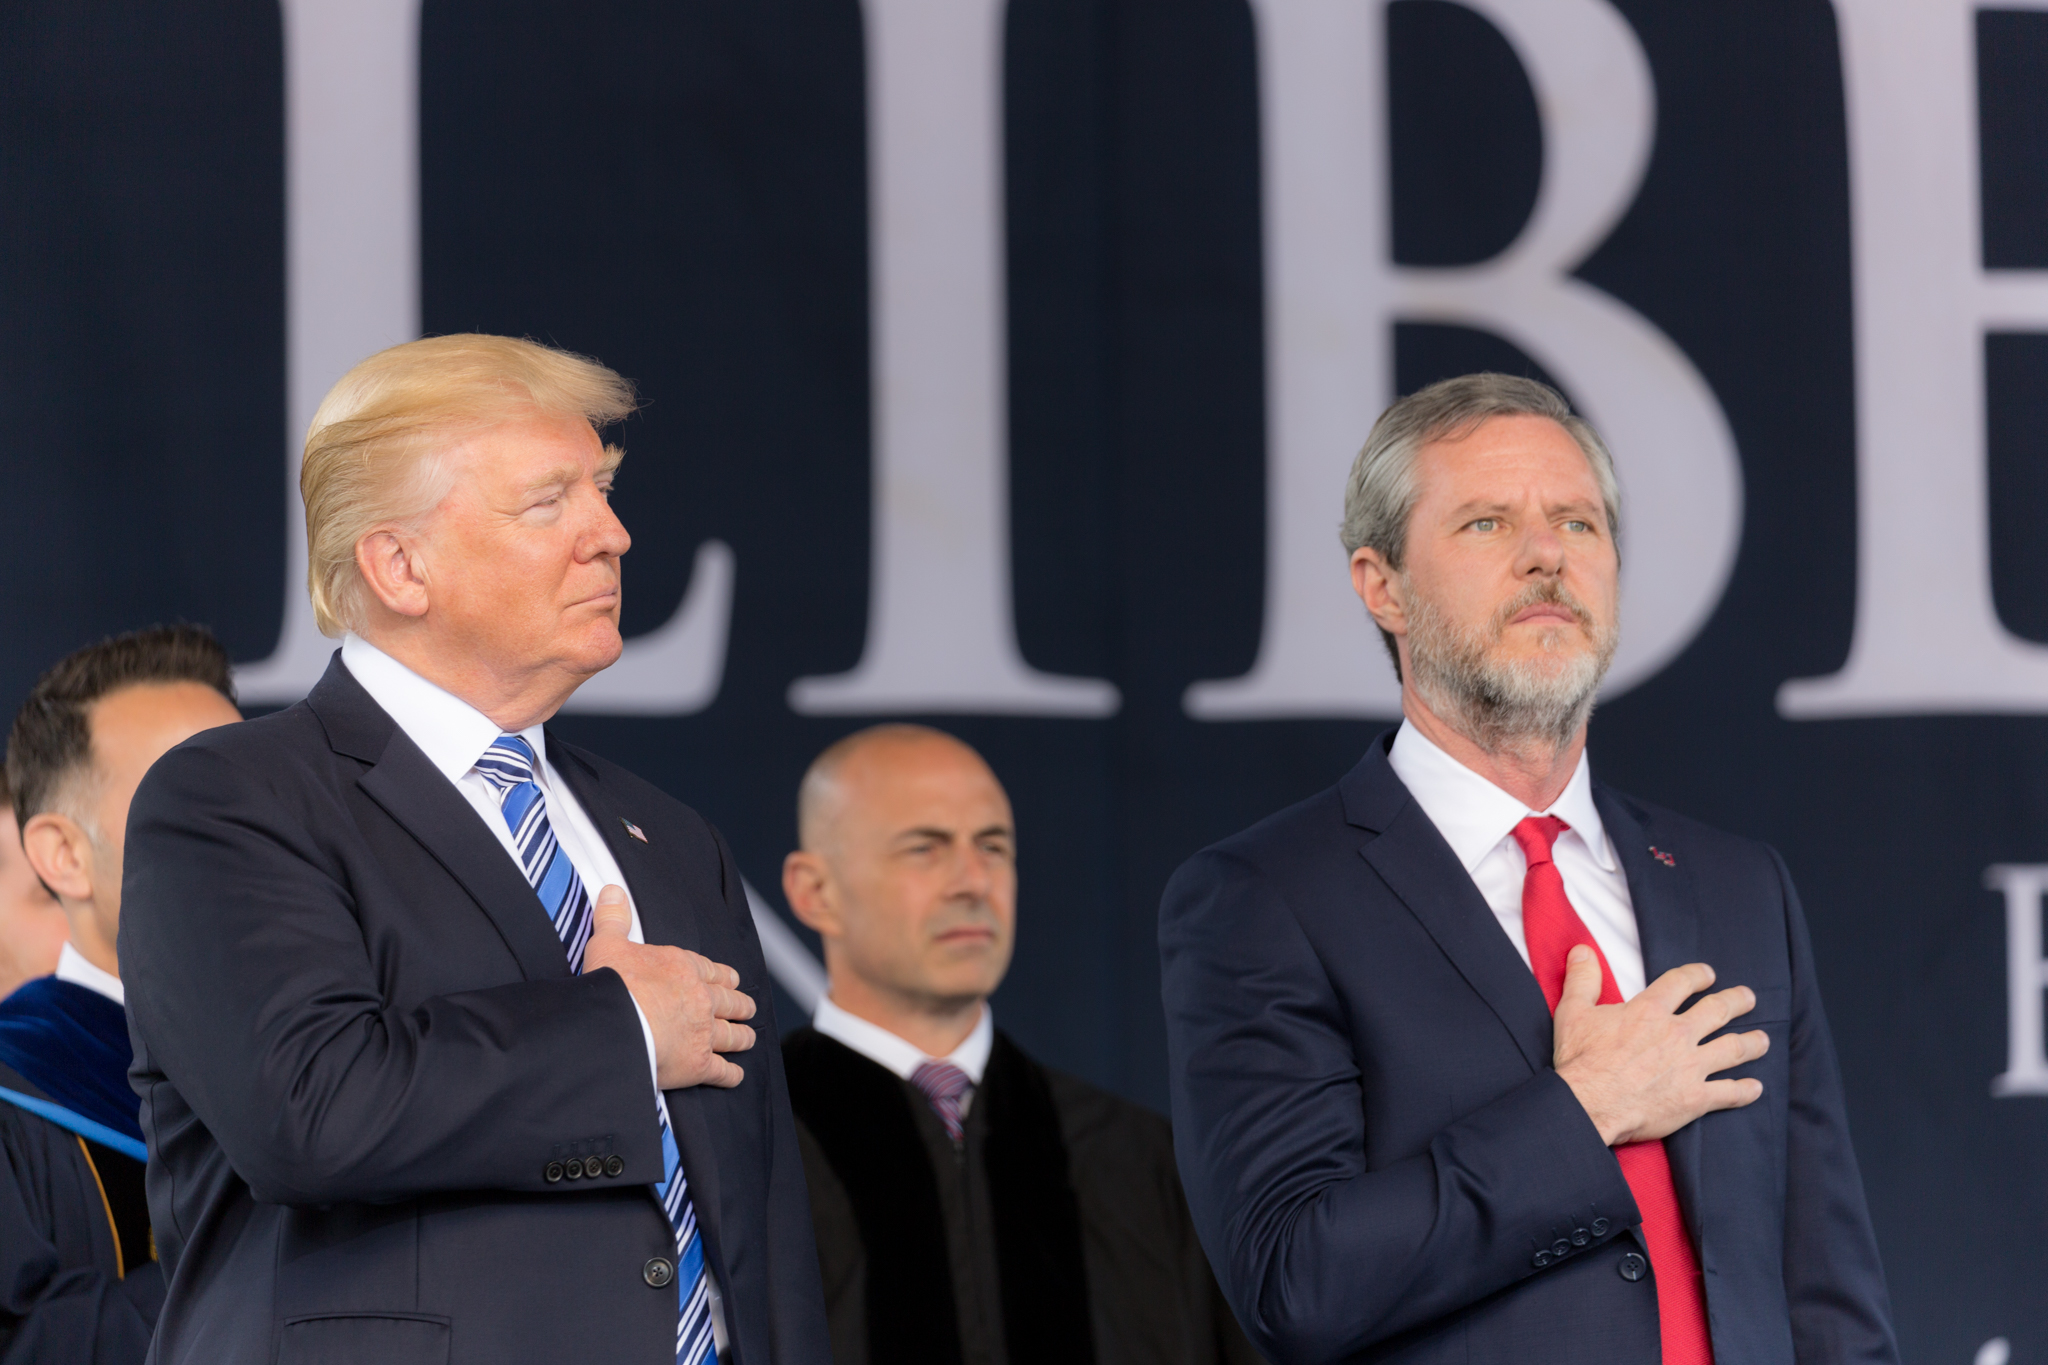 Jerry Falwell Jr. (right) with U.S. President Donald Trump. Creative Commons/White House photo.